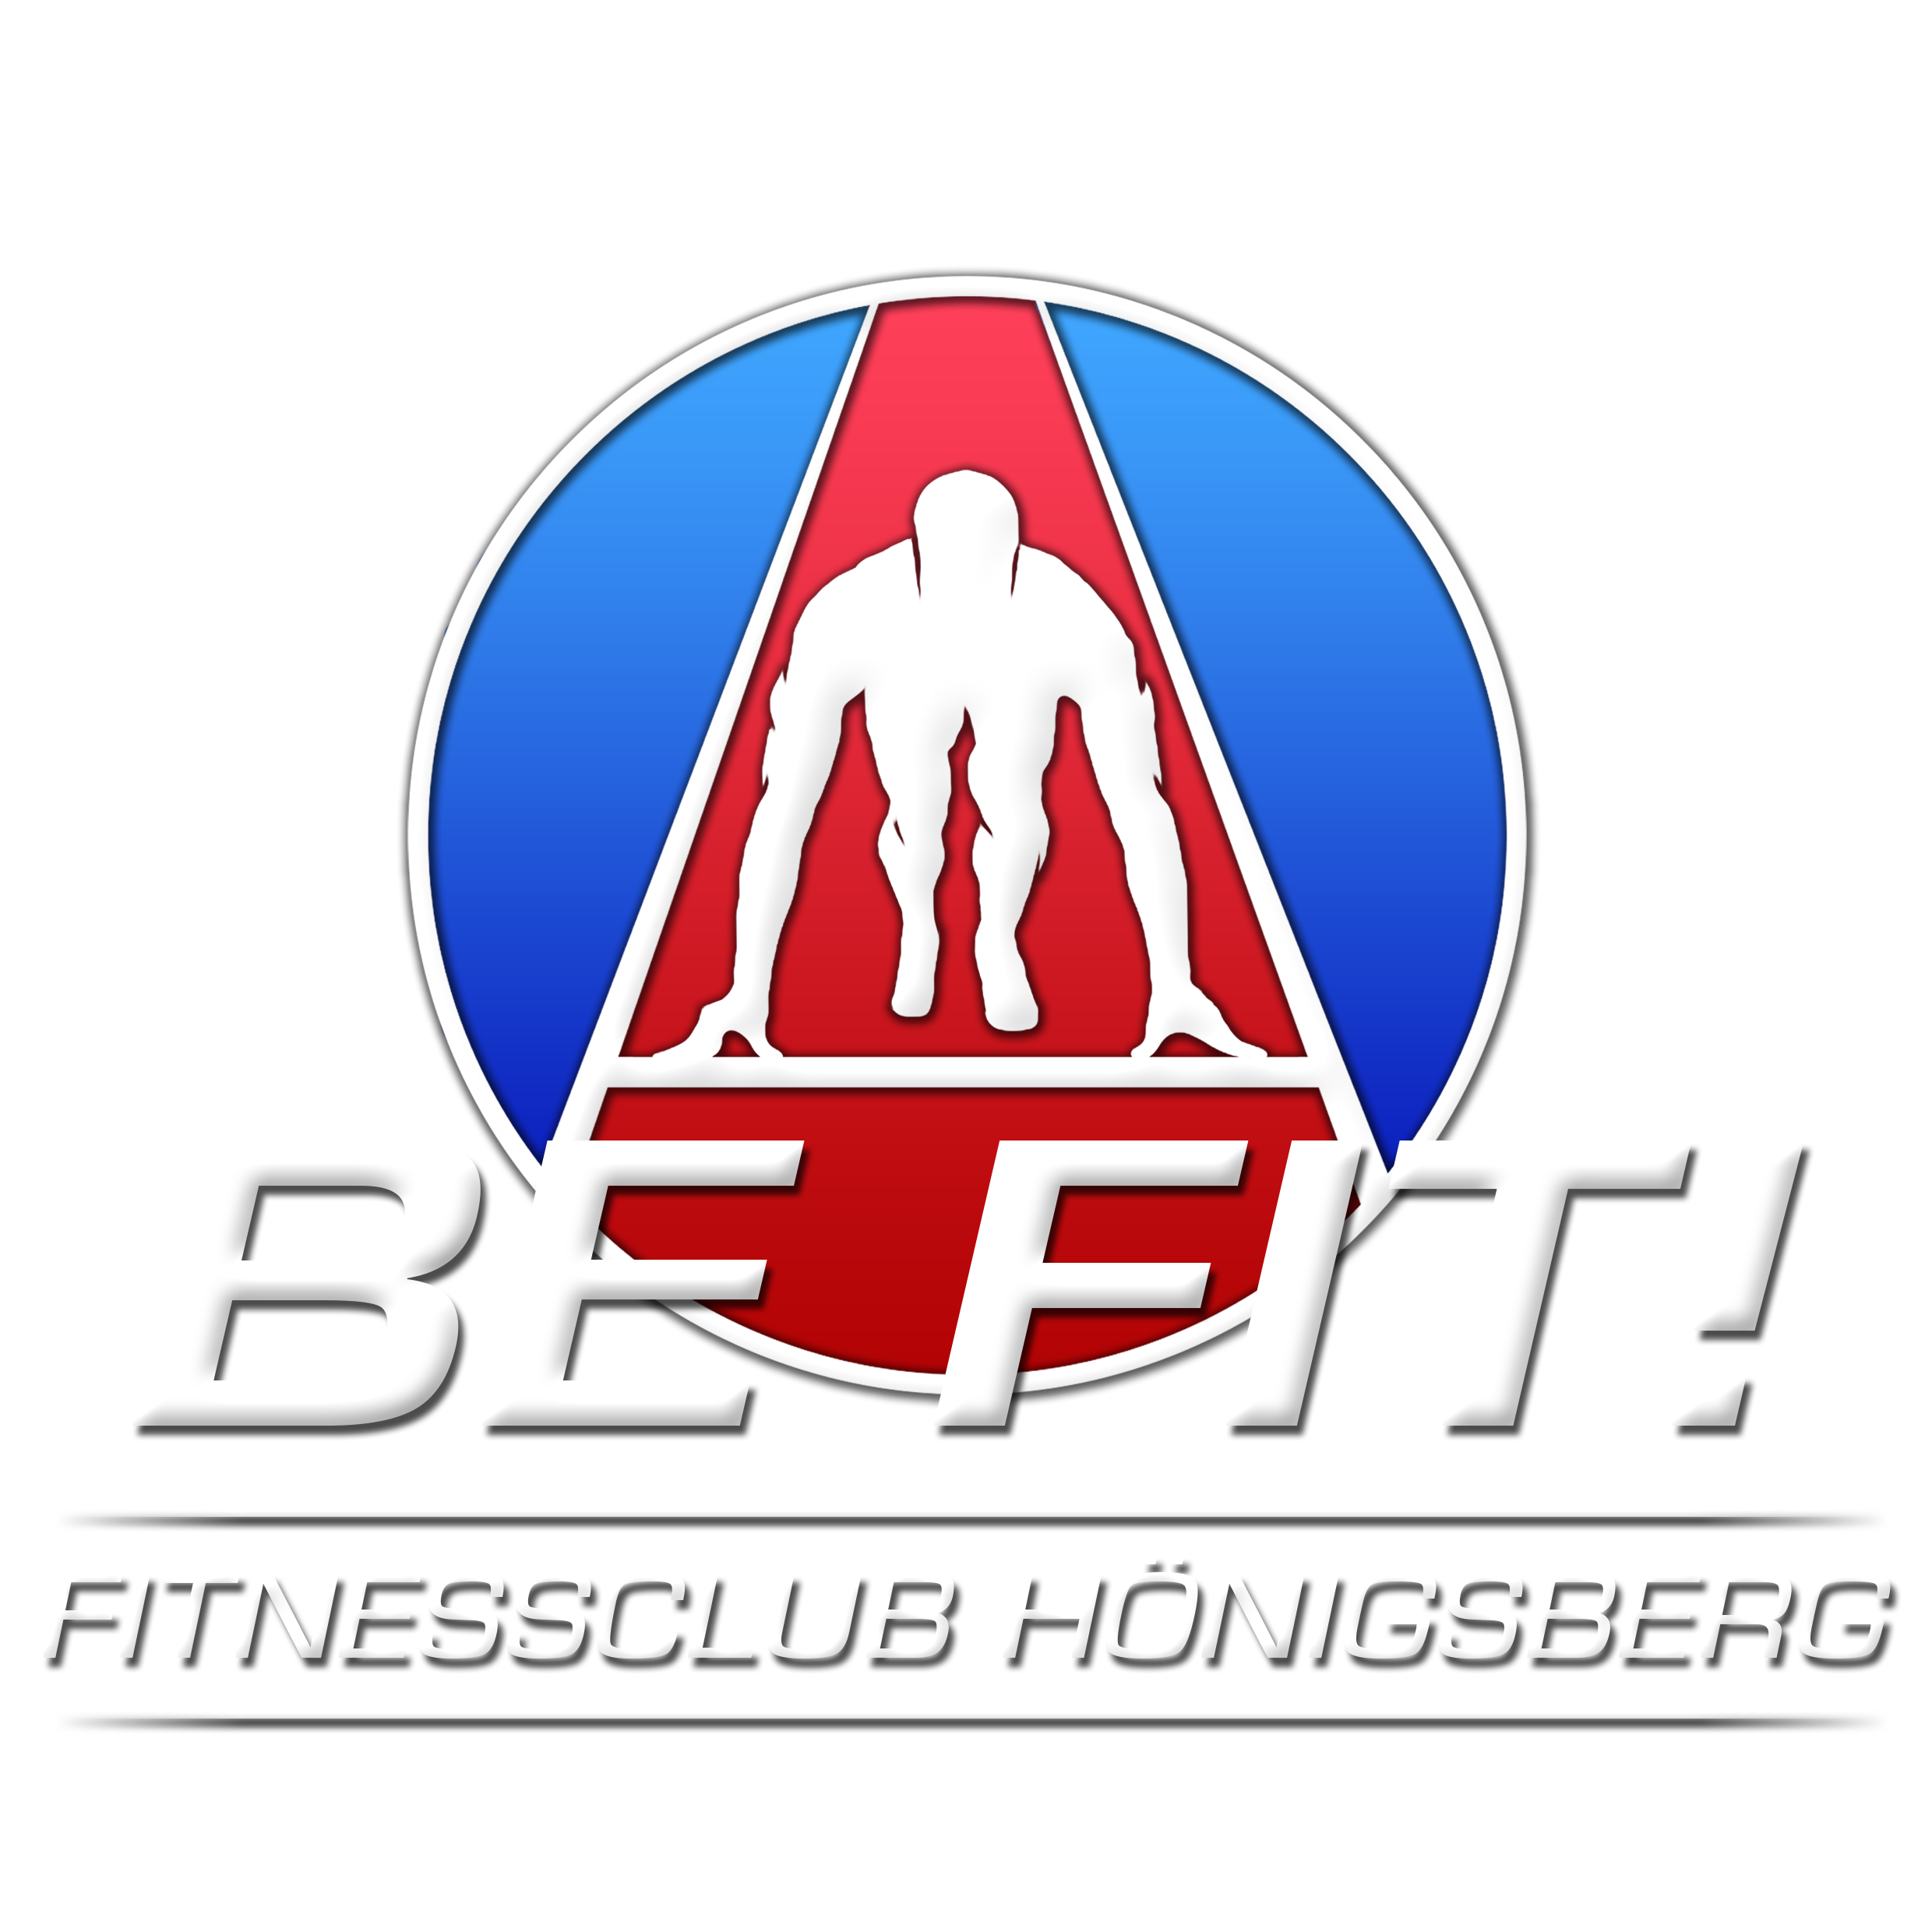 BE FIT!